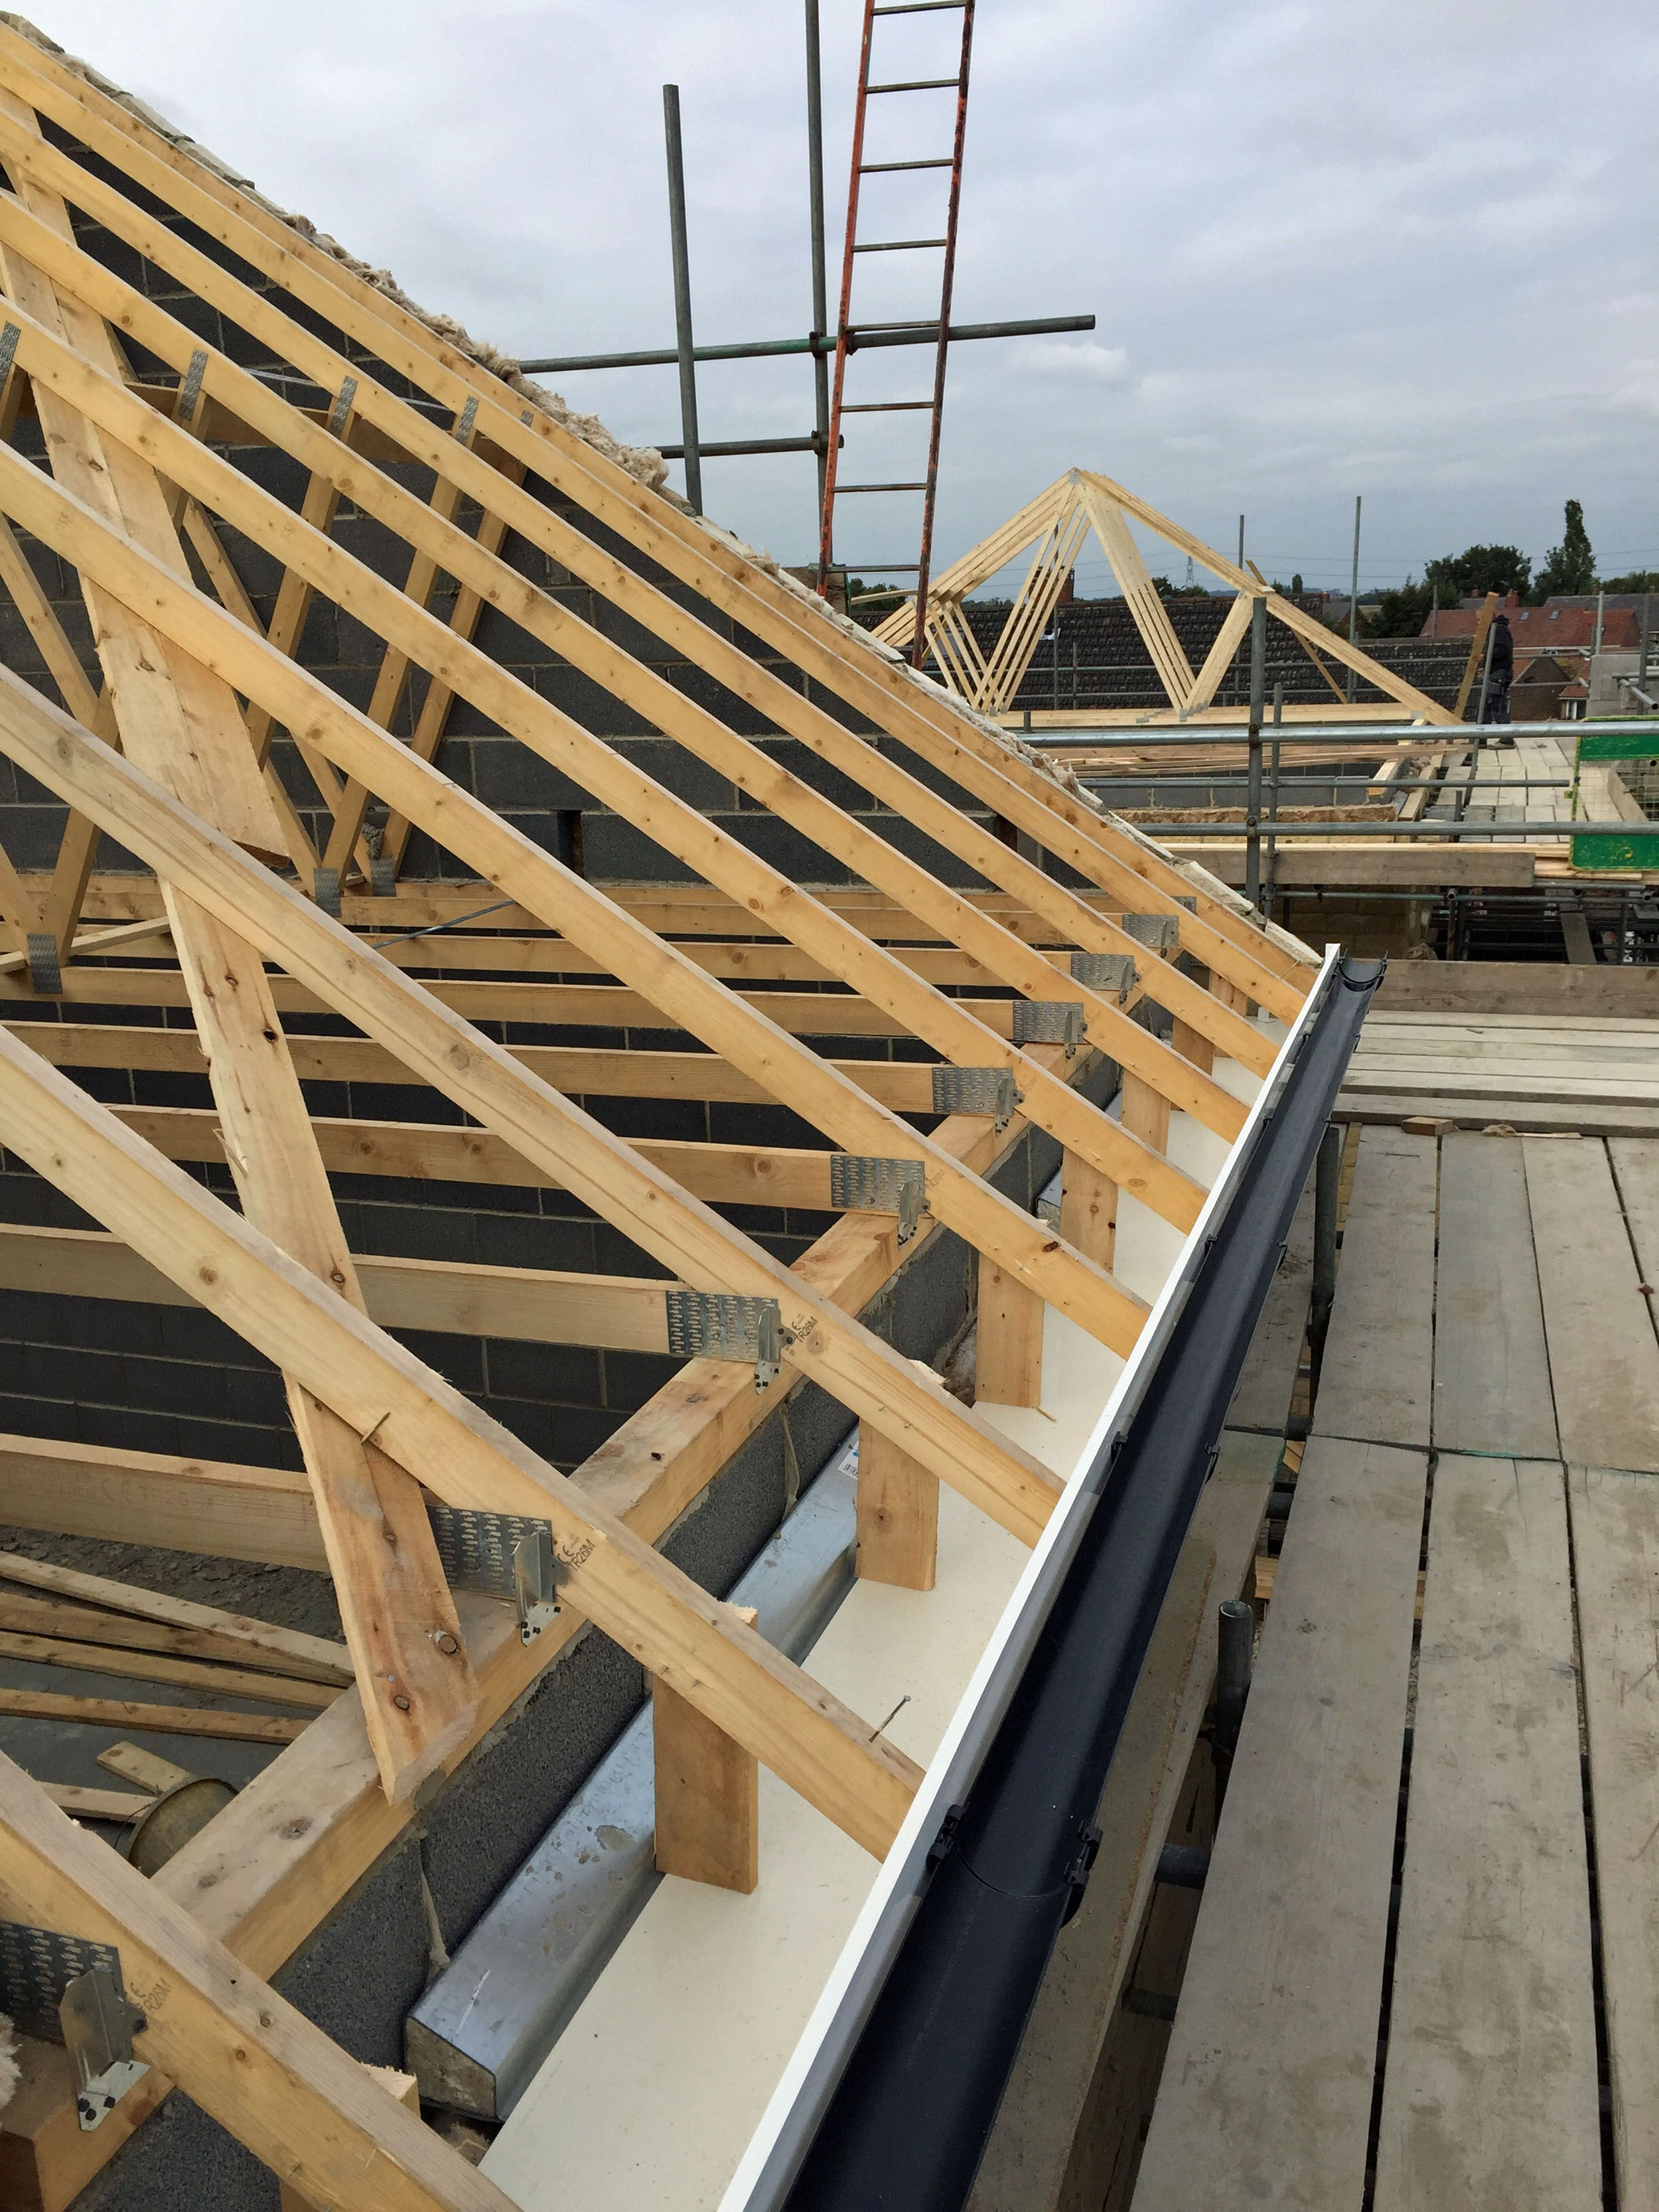 Guttering In Place On Plot 3 And Roof Trusses Being